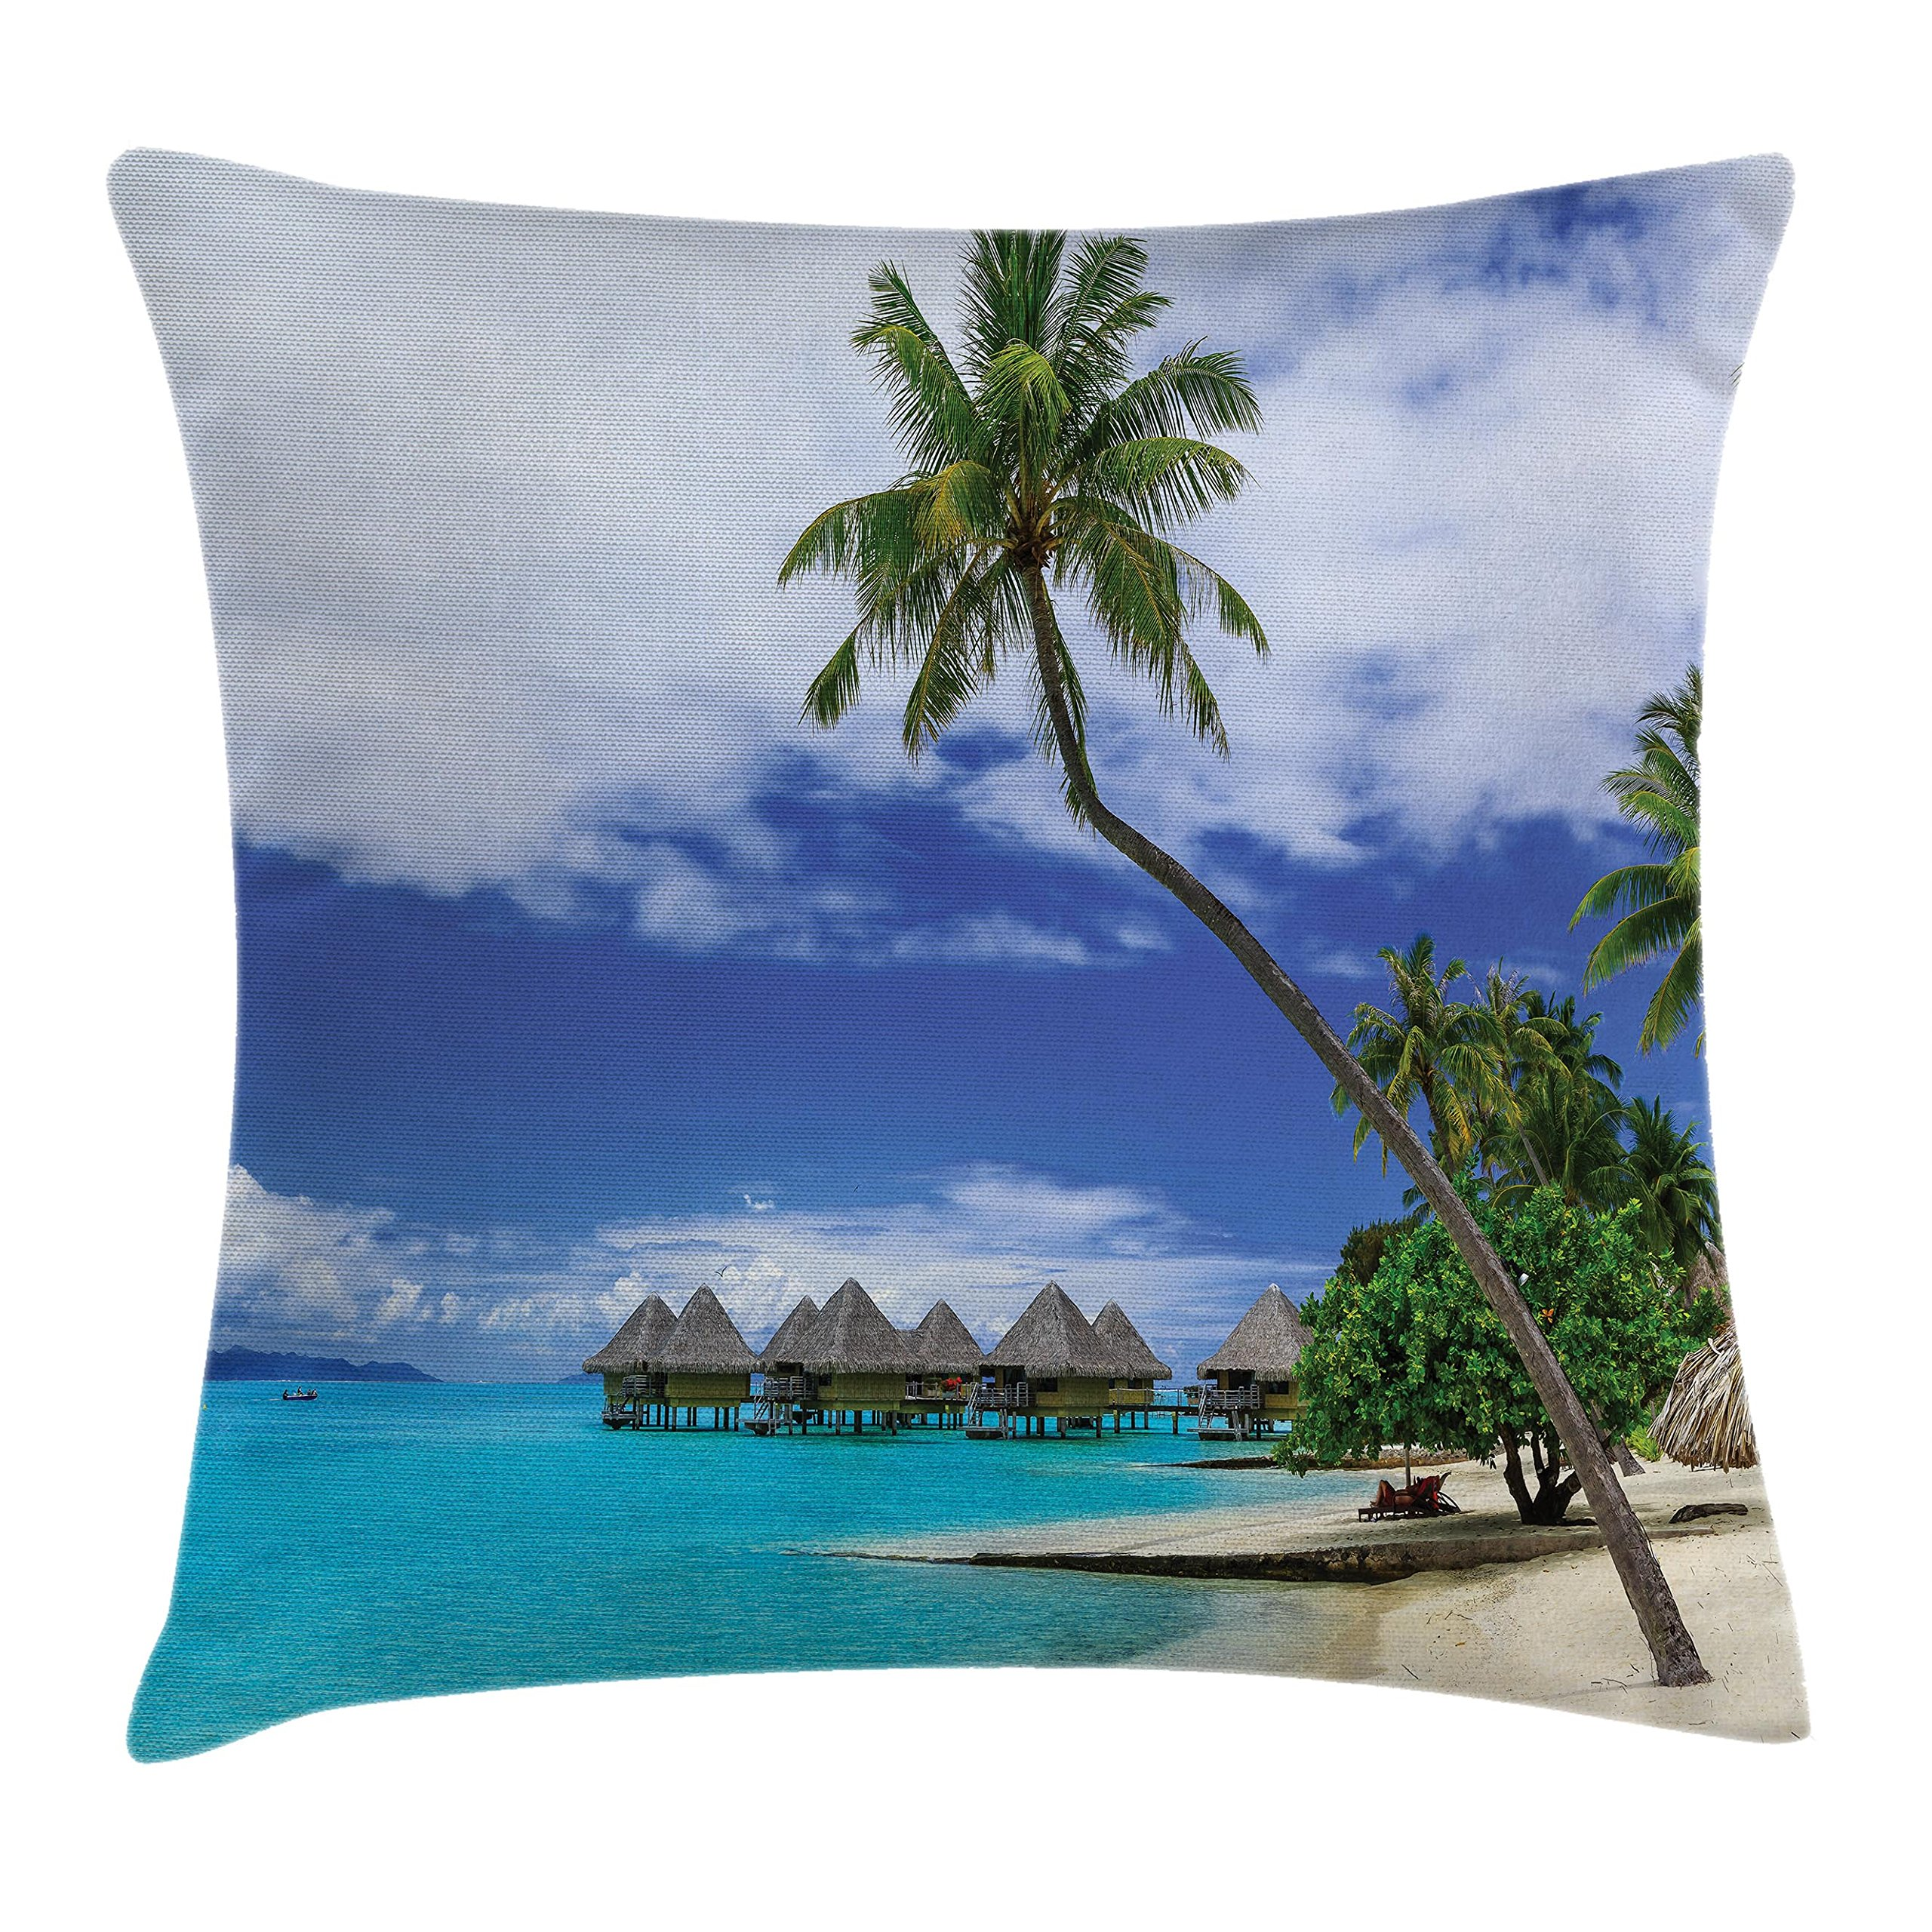 Ambesonne Tropical Decor Throw Pillow Cushion Cover, Over-Water Bungalows of Resort Bora Bora Island Pacific Ocean Panorama, Decorative Square Accent Pillow Case, 16 X 16 Inches, Green Blue White